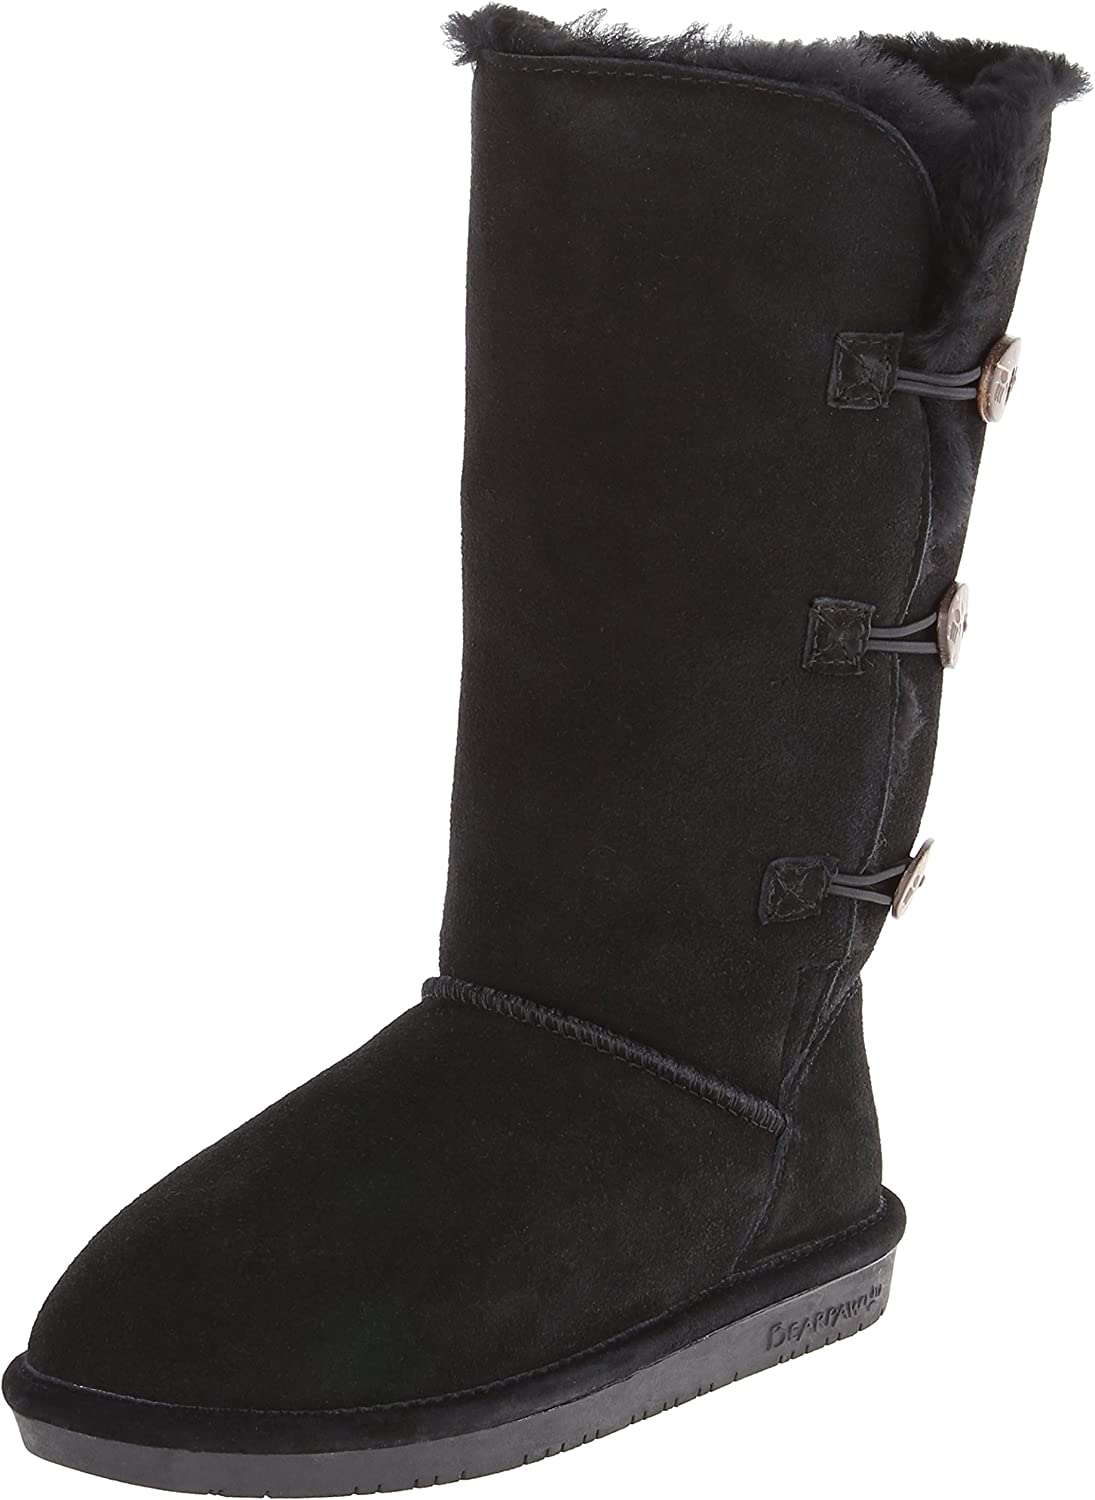 Bearpaw Women's Lauren Winter Boot, Black, 6 M US